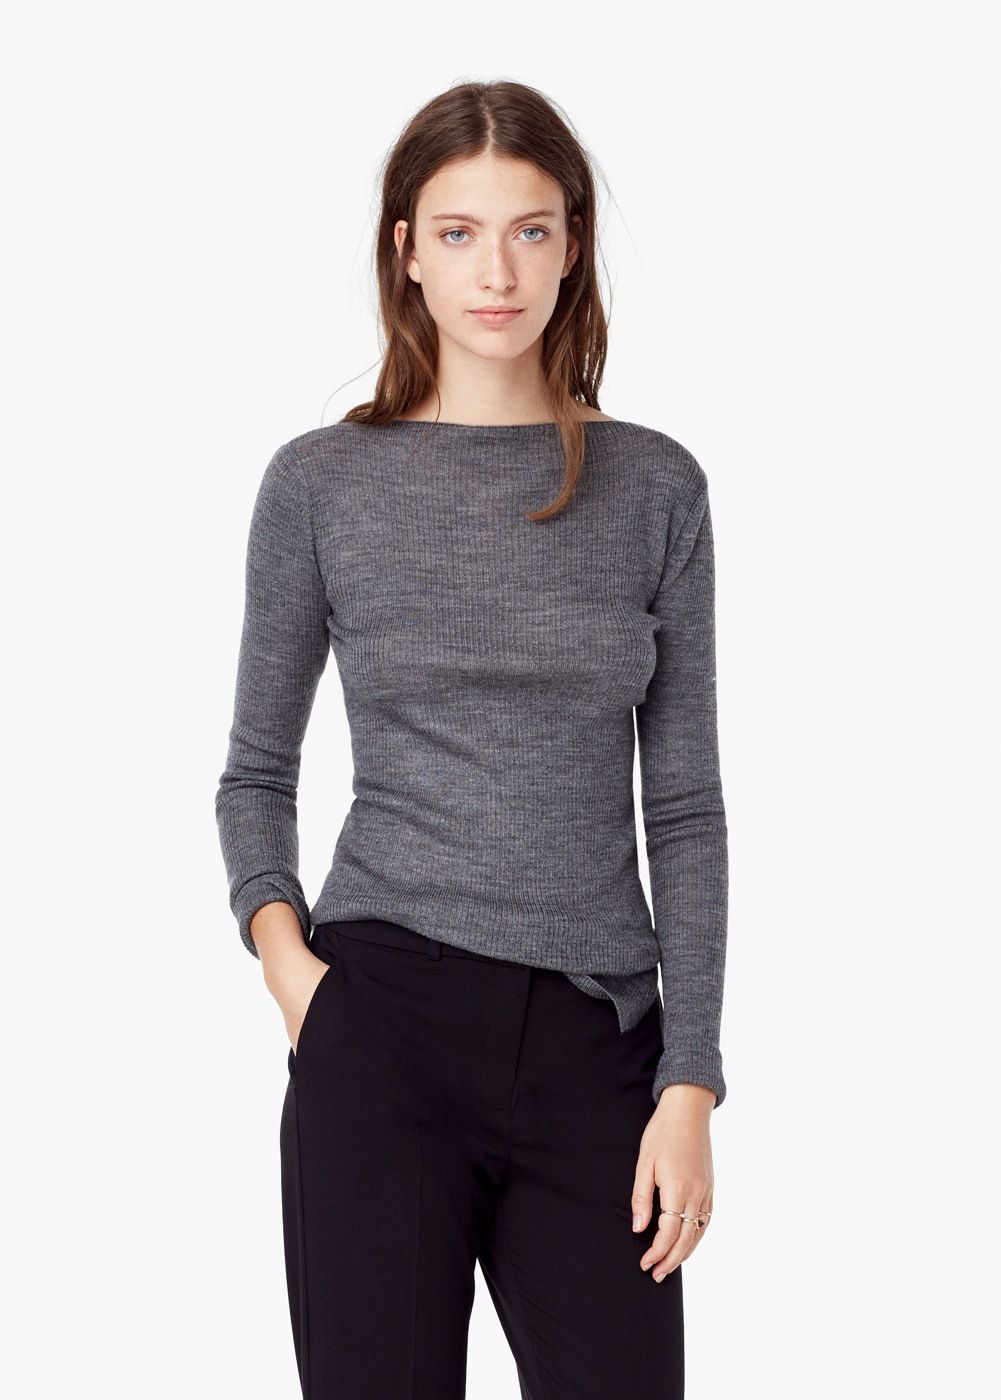 Blend Wool Blend Ribbed Sweater Woman Wool Wool Woman Sweater Ribbed Sweater Woman Blend Ribbed wfIxSanqxX